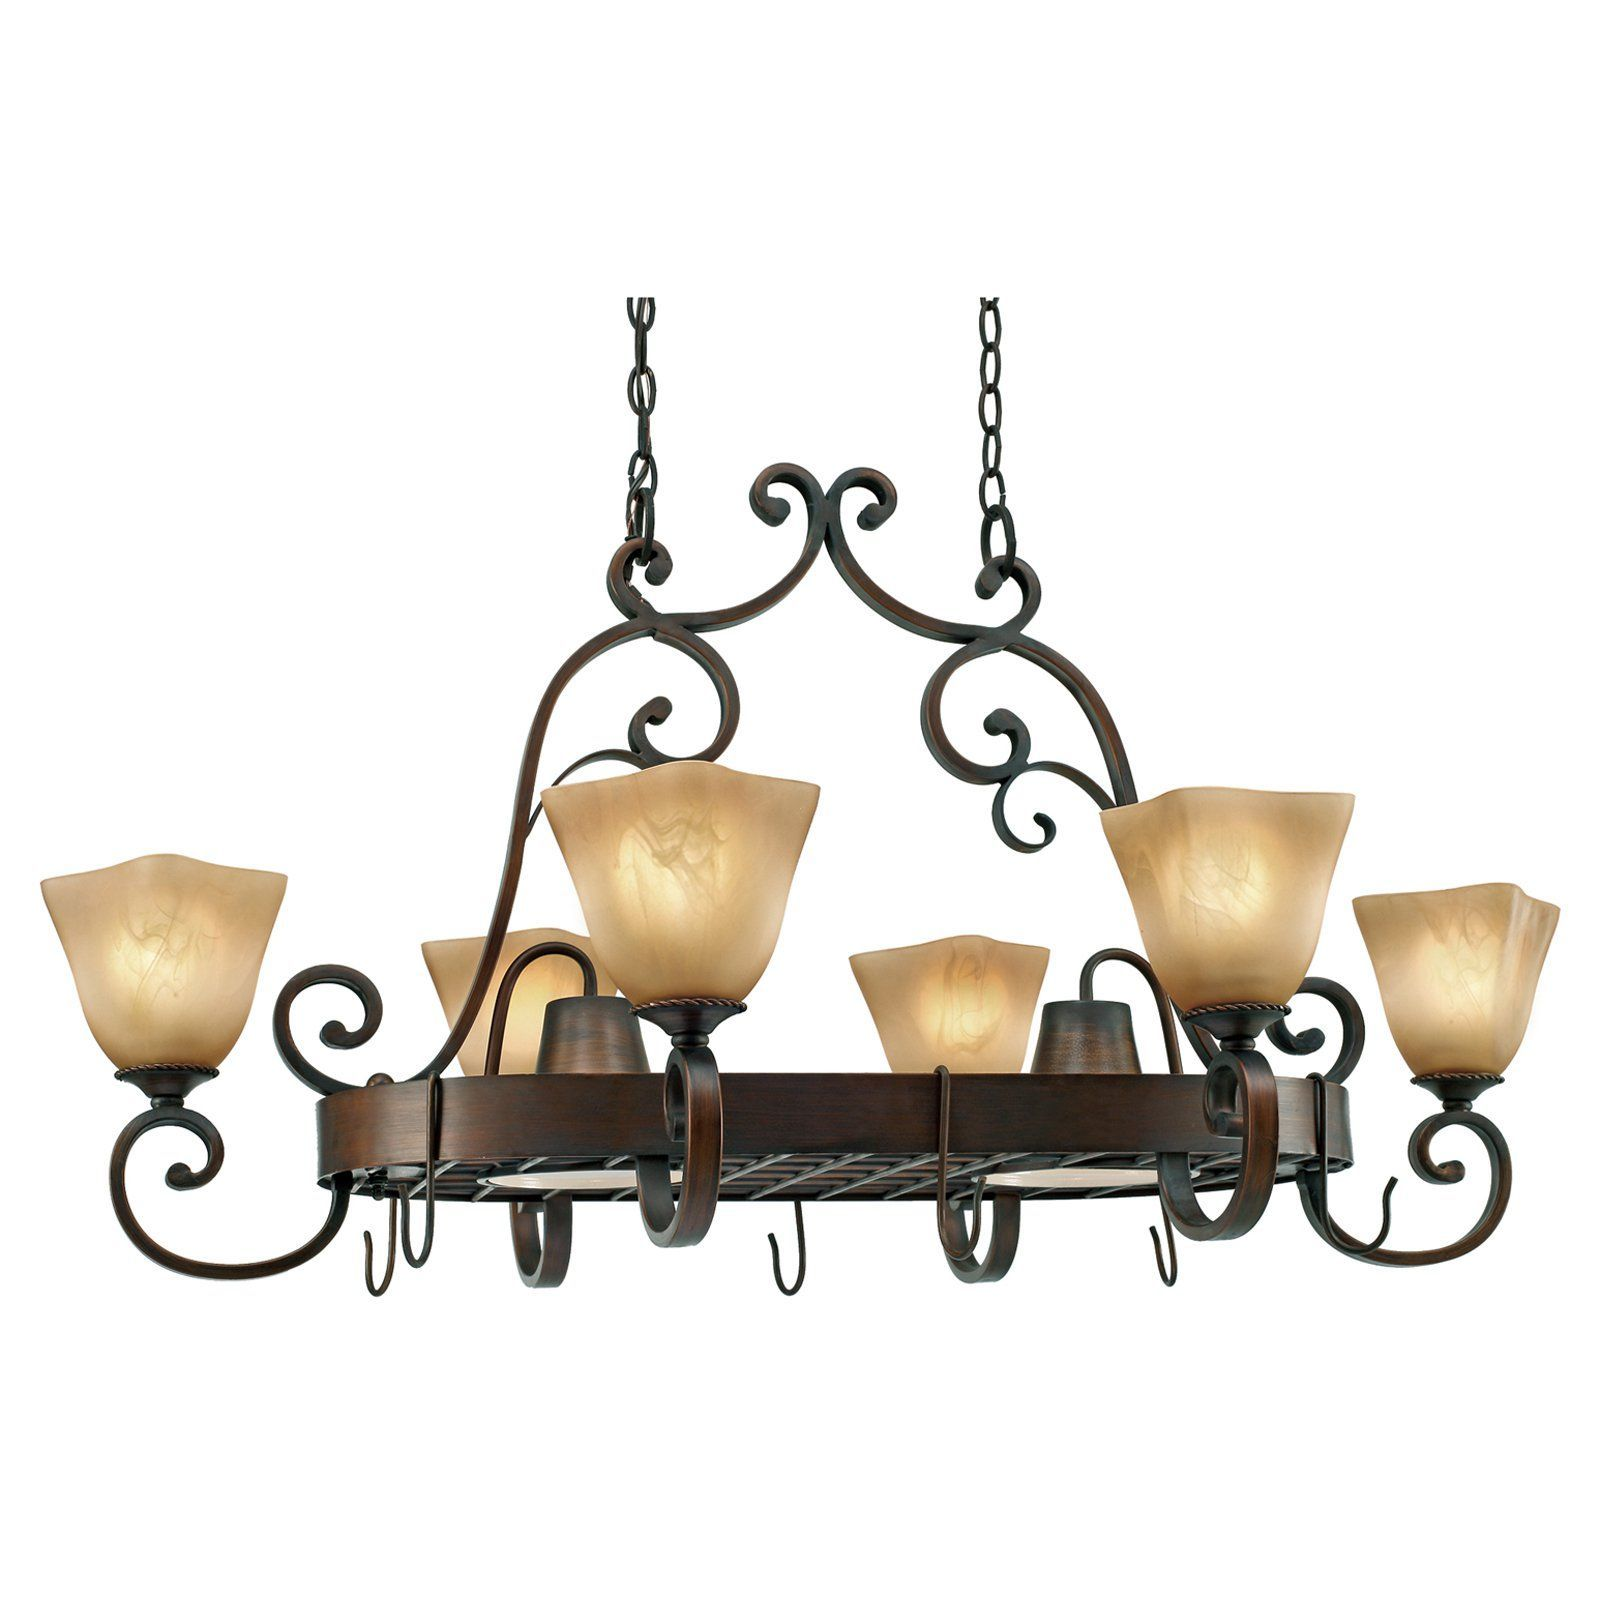 Have To Have It Golden Lighting Meridian Light Pot Rack - Kitchen pot rack light fixtures